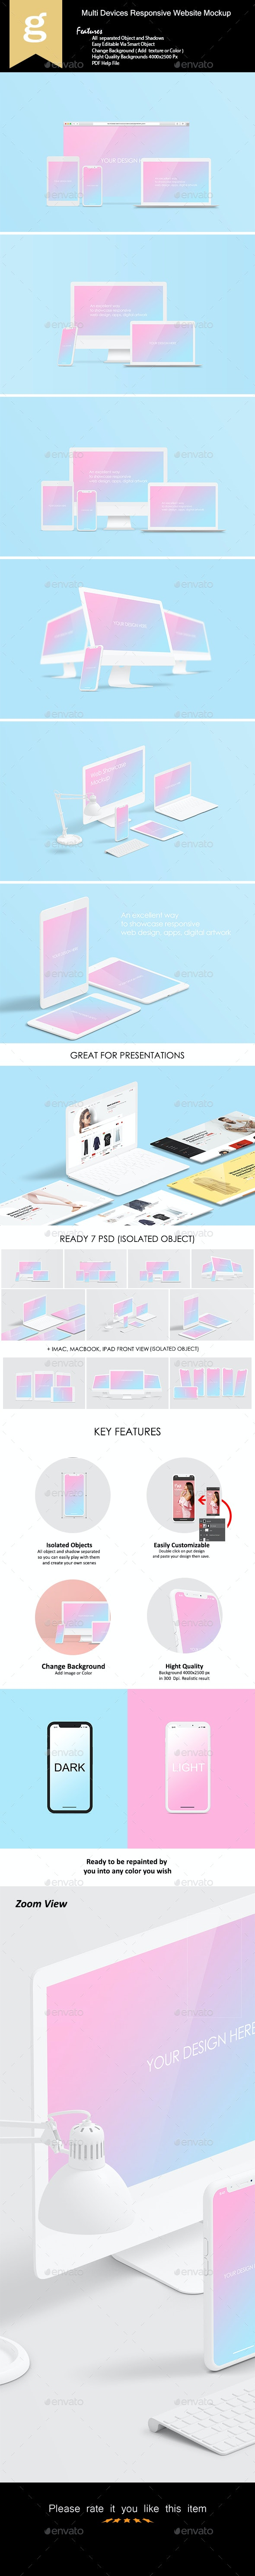 Multi Devices Responsive Website Mock-Ups - Displays Product Mock-Ups